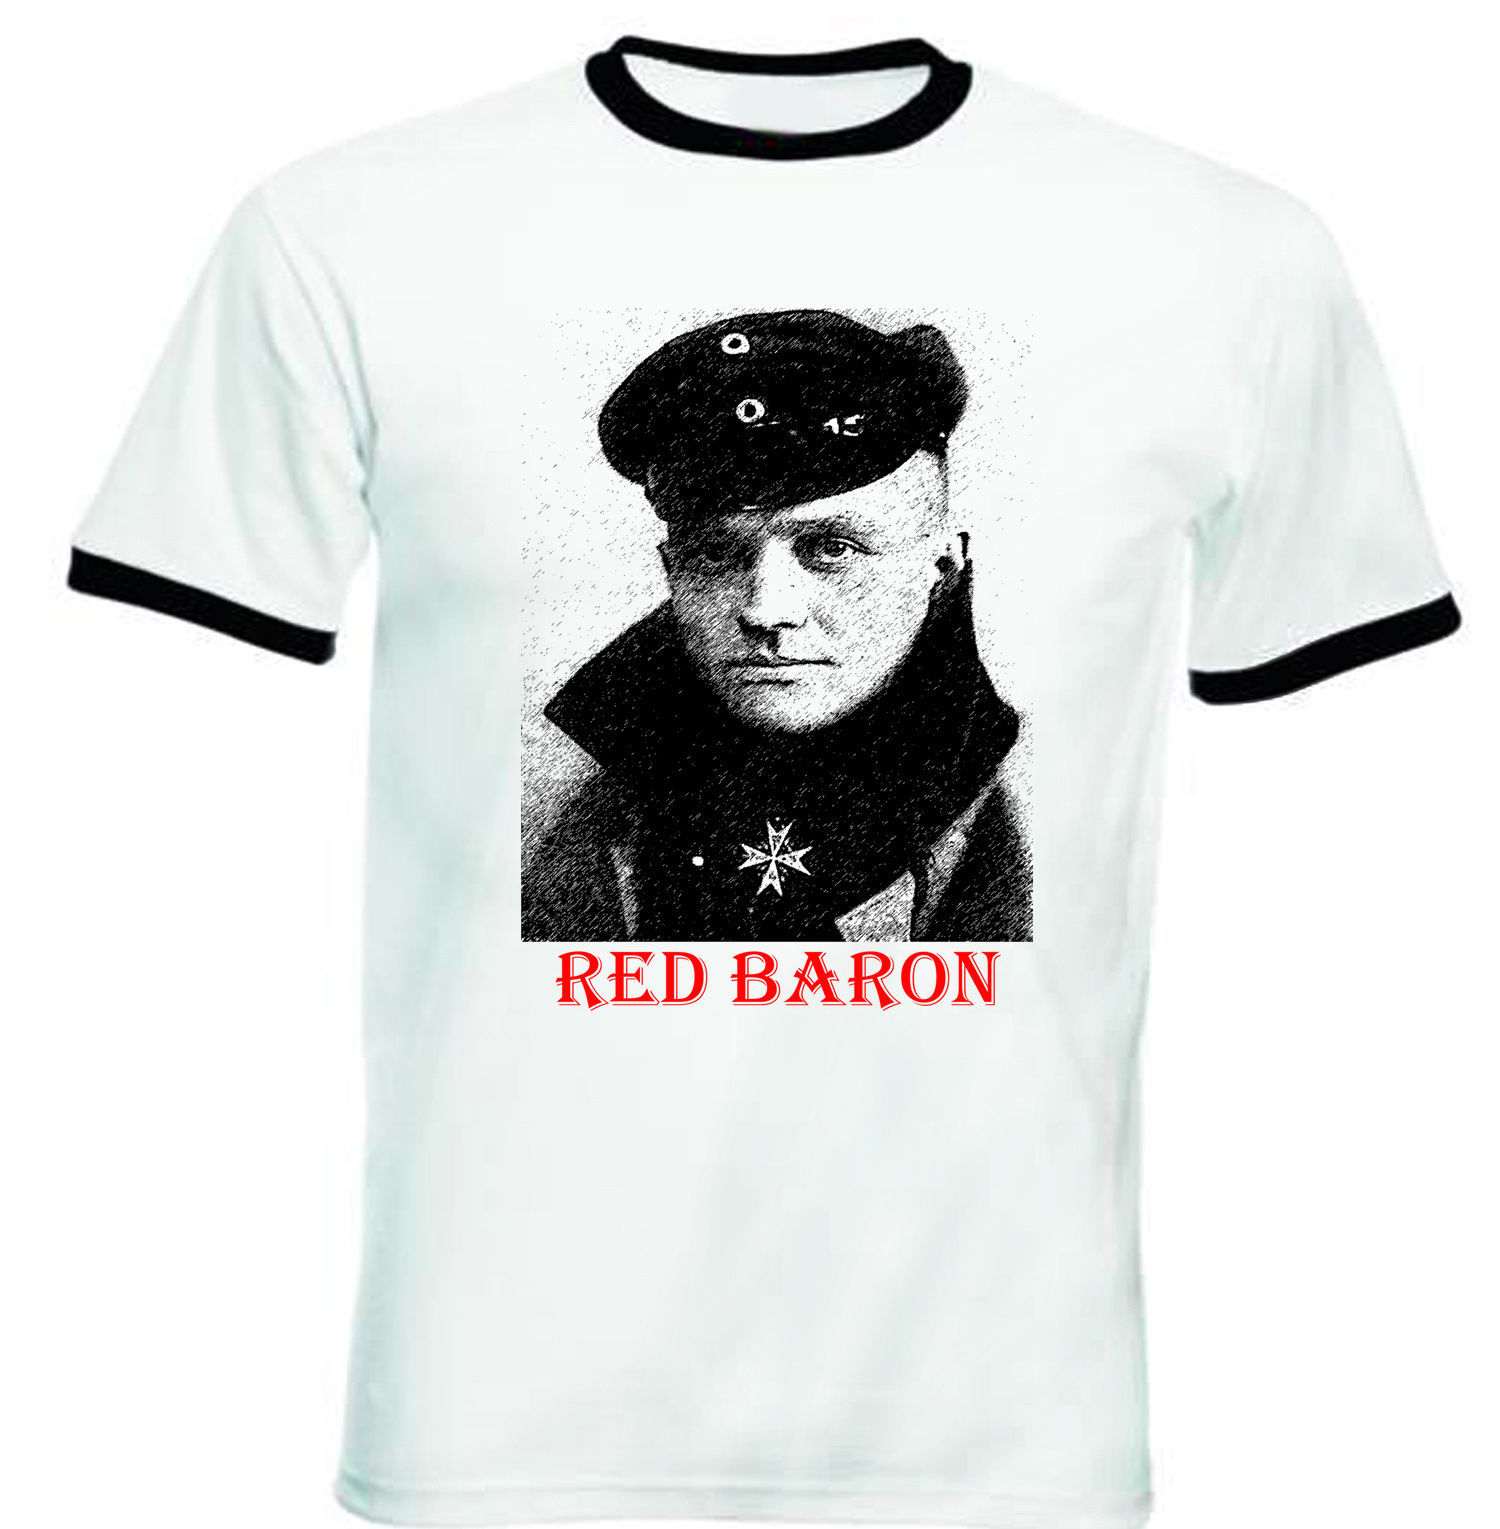 Primary image for RED BARON - NEW BLACK RINGER TSHIRT S-M-L-XL-XXL